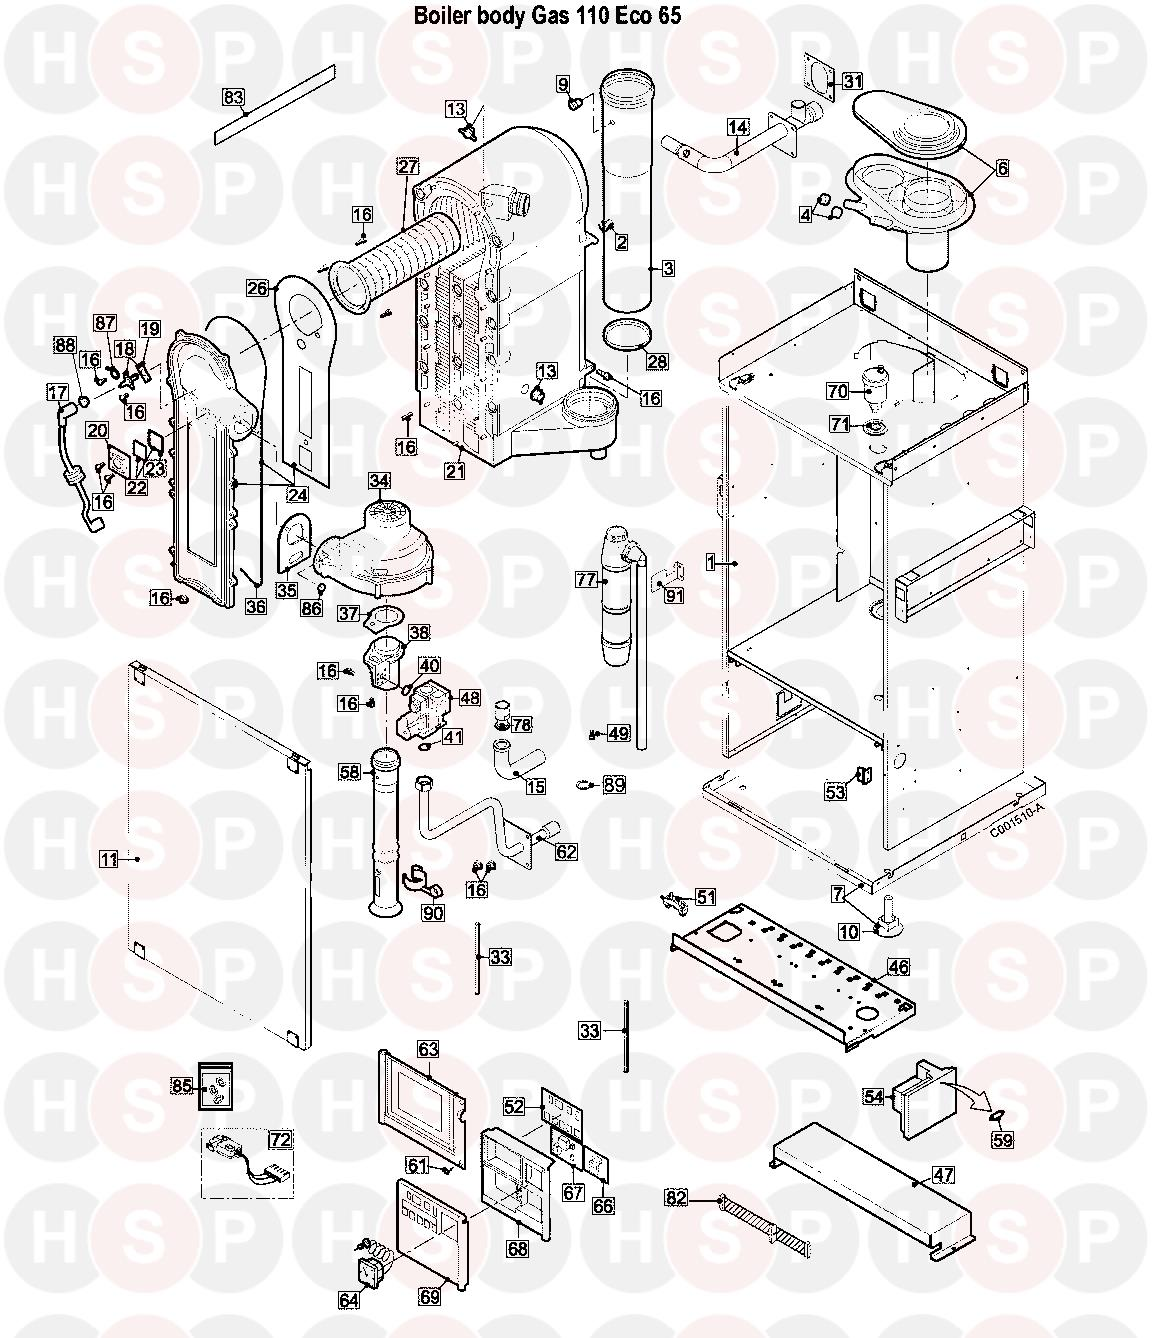 Boiler Exploded View diagram for Remeha-Commercial Gas 110 Eco 65